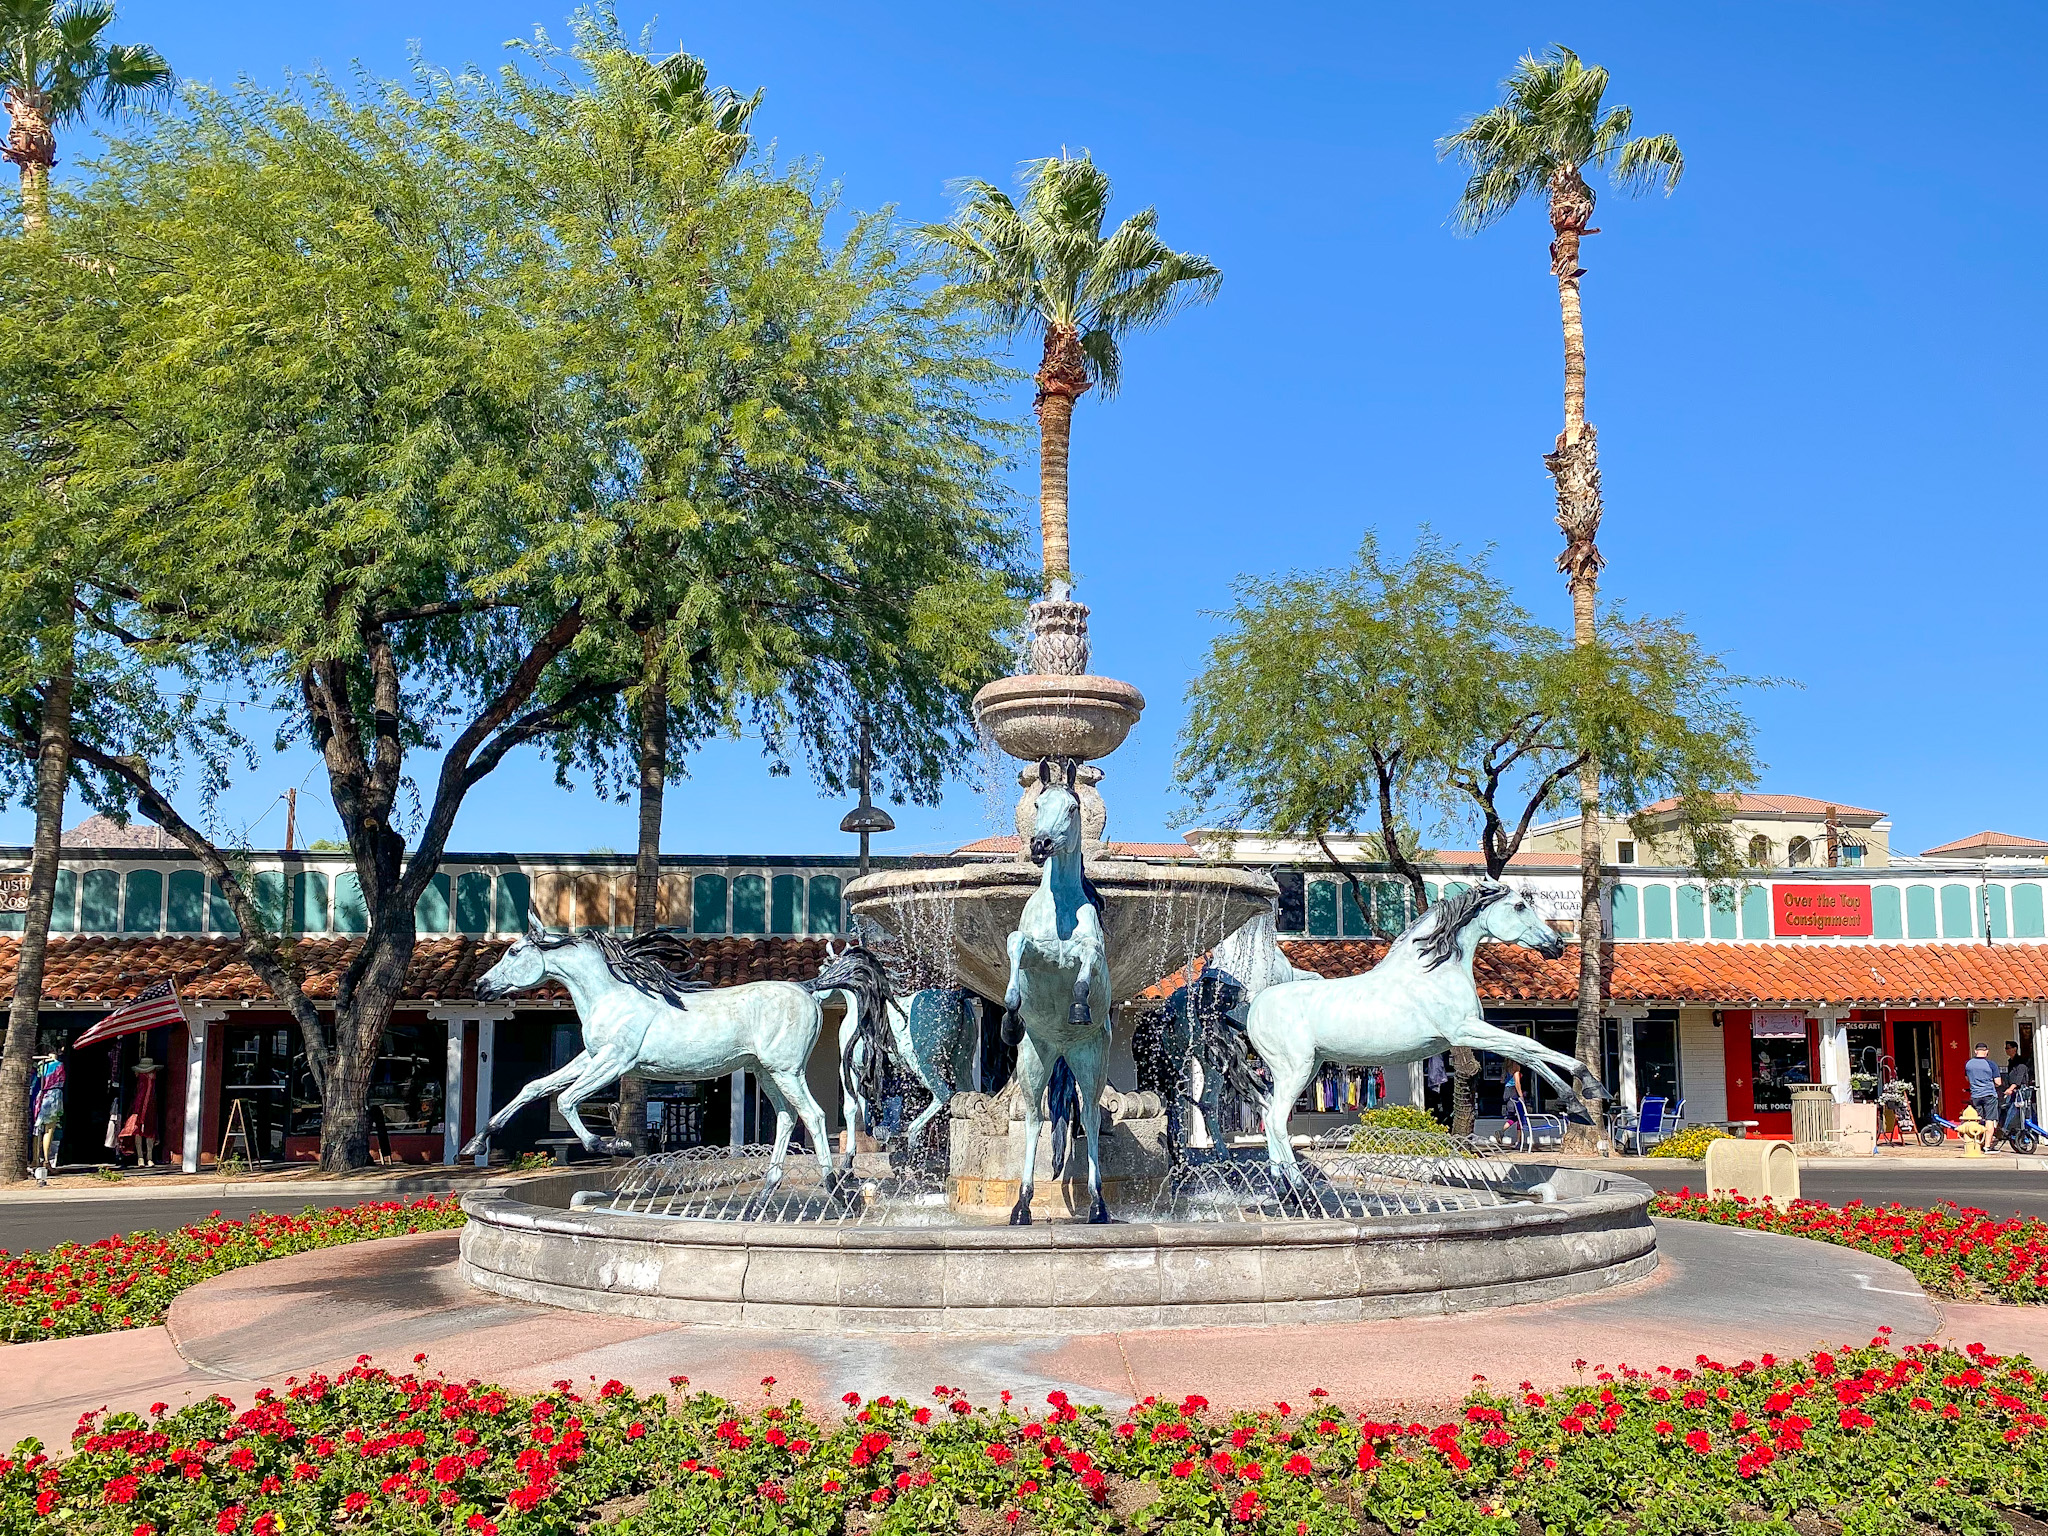 Old Bronze Horse Fountain in Old Town Scottsdale